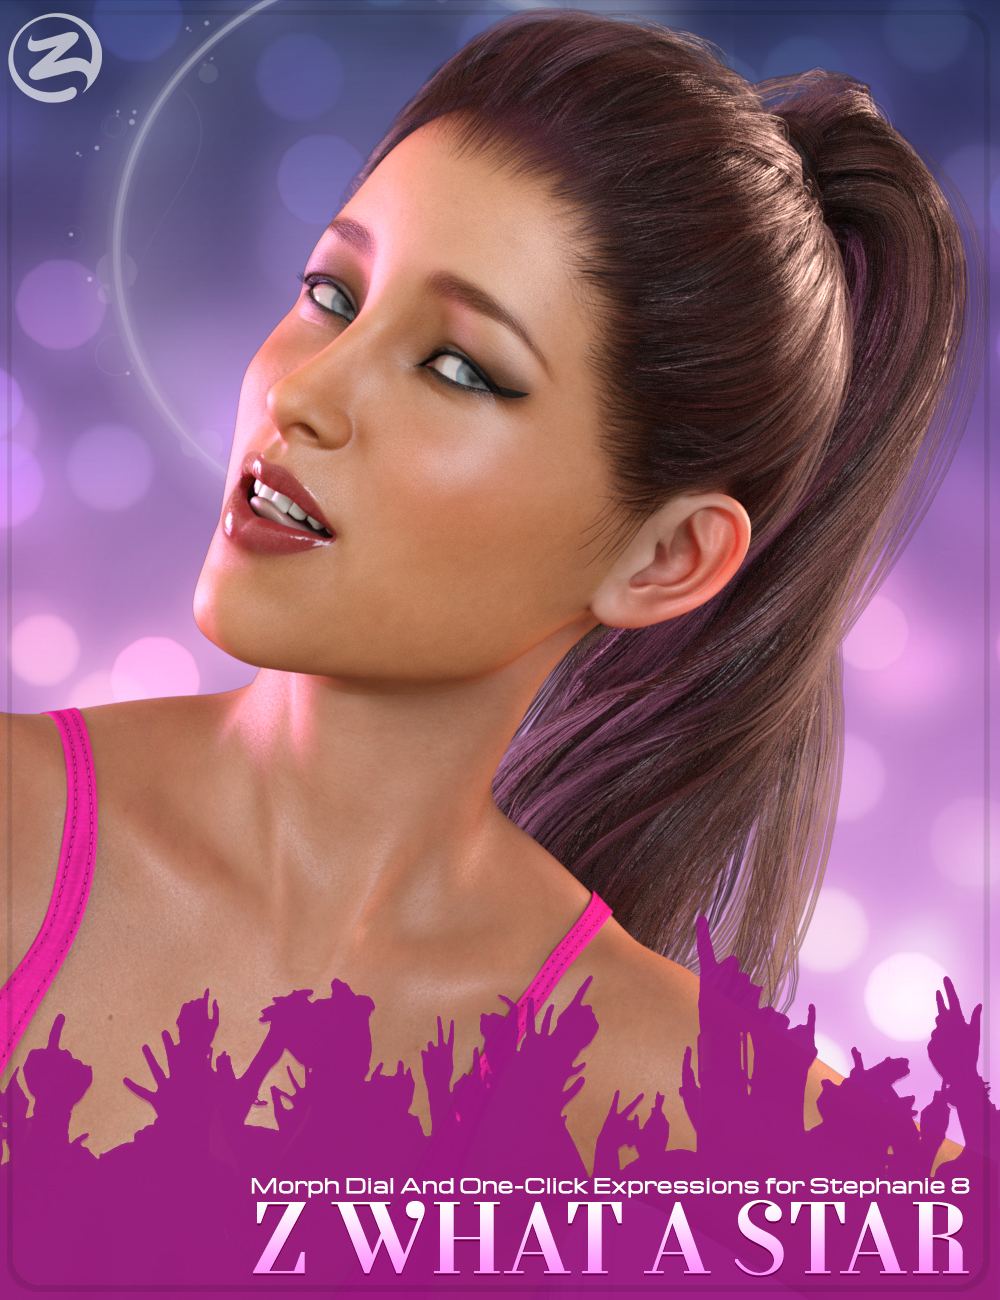 Z What A Star - Dialable and One-Click Expressions for Stephanie 8 by: Zeddicuss, 3D Models by Daz 3D